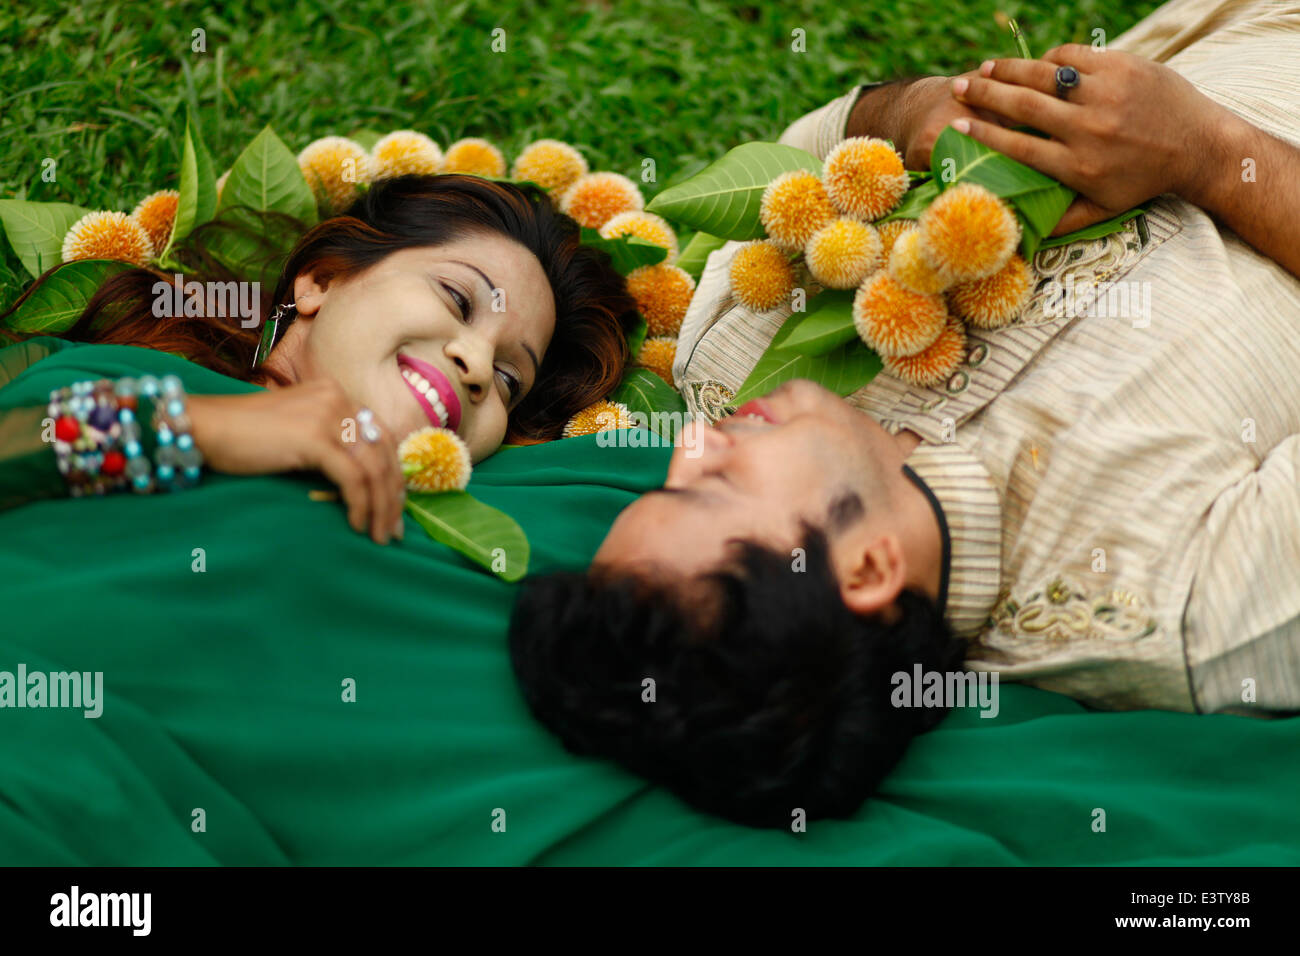 A couple present their love with kadam flowers the kadam flower anthocephalus cadamba